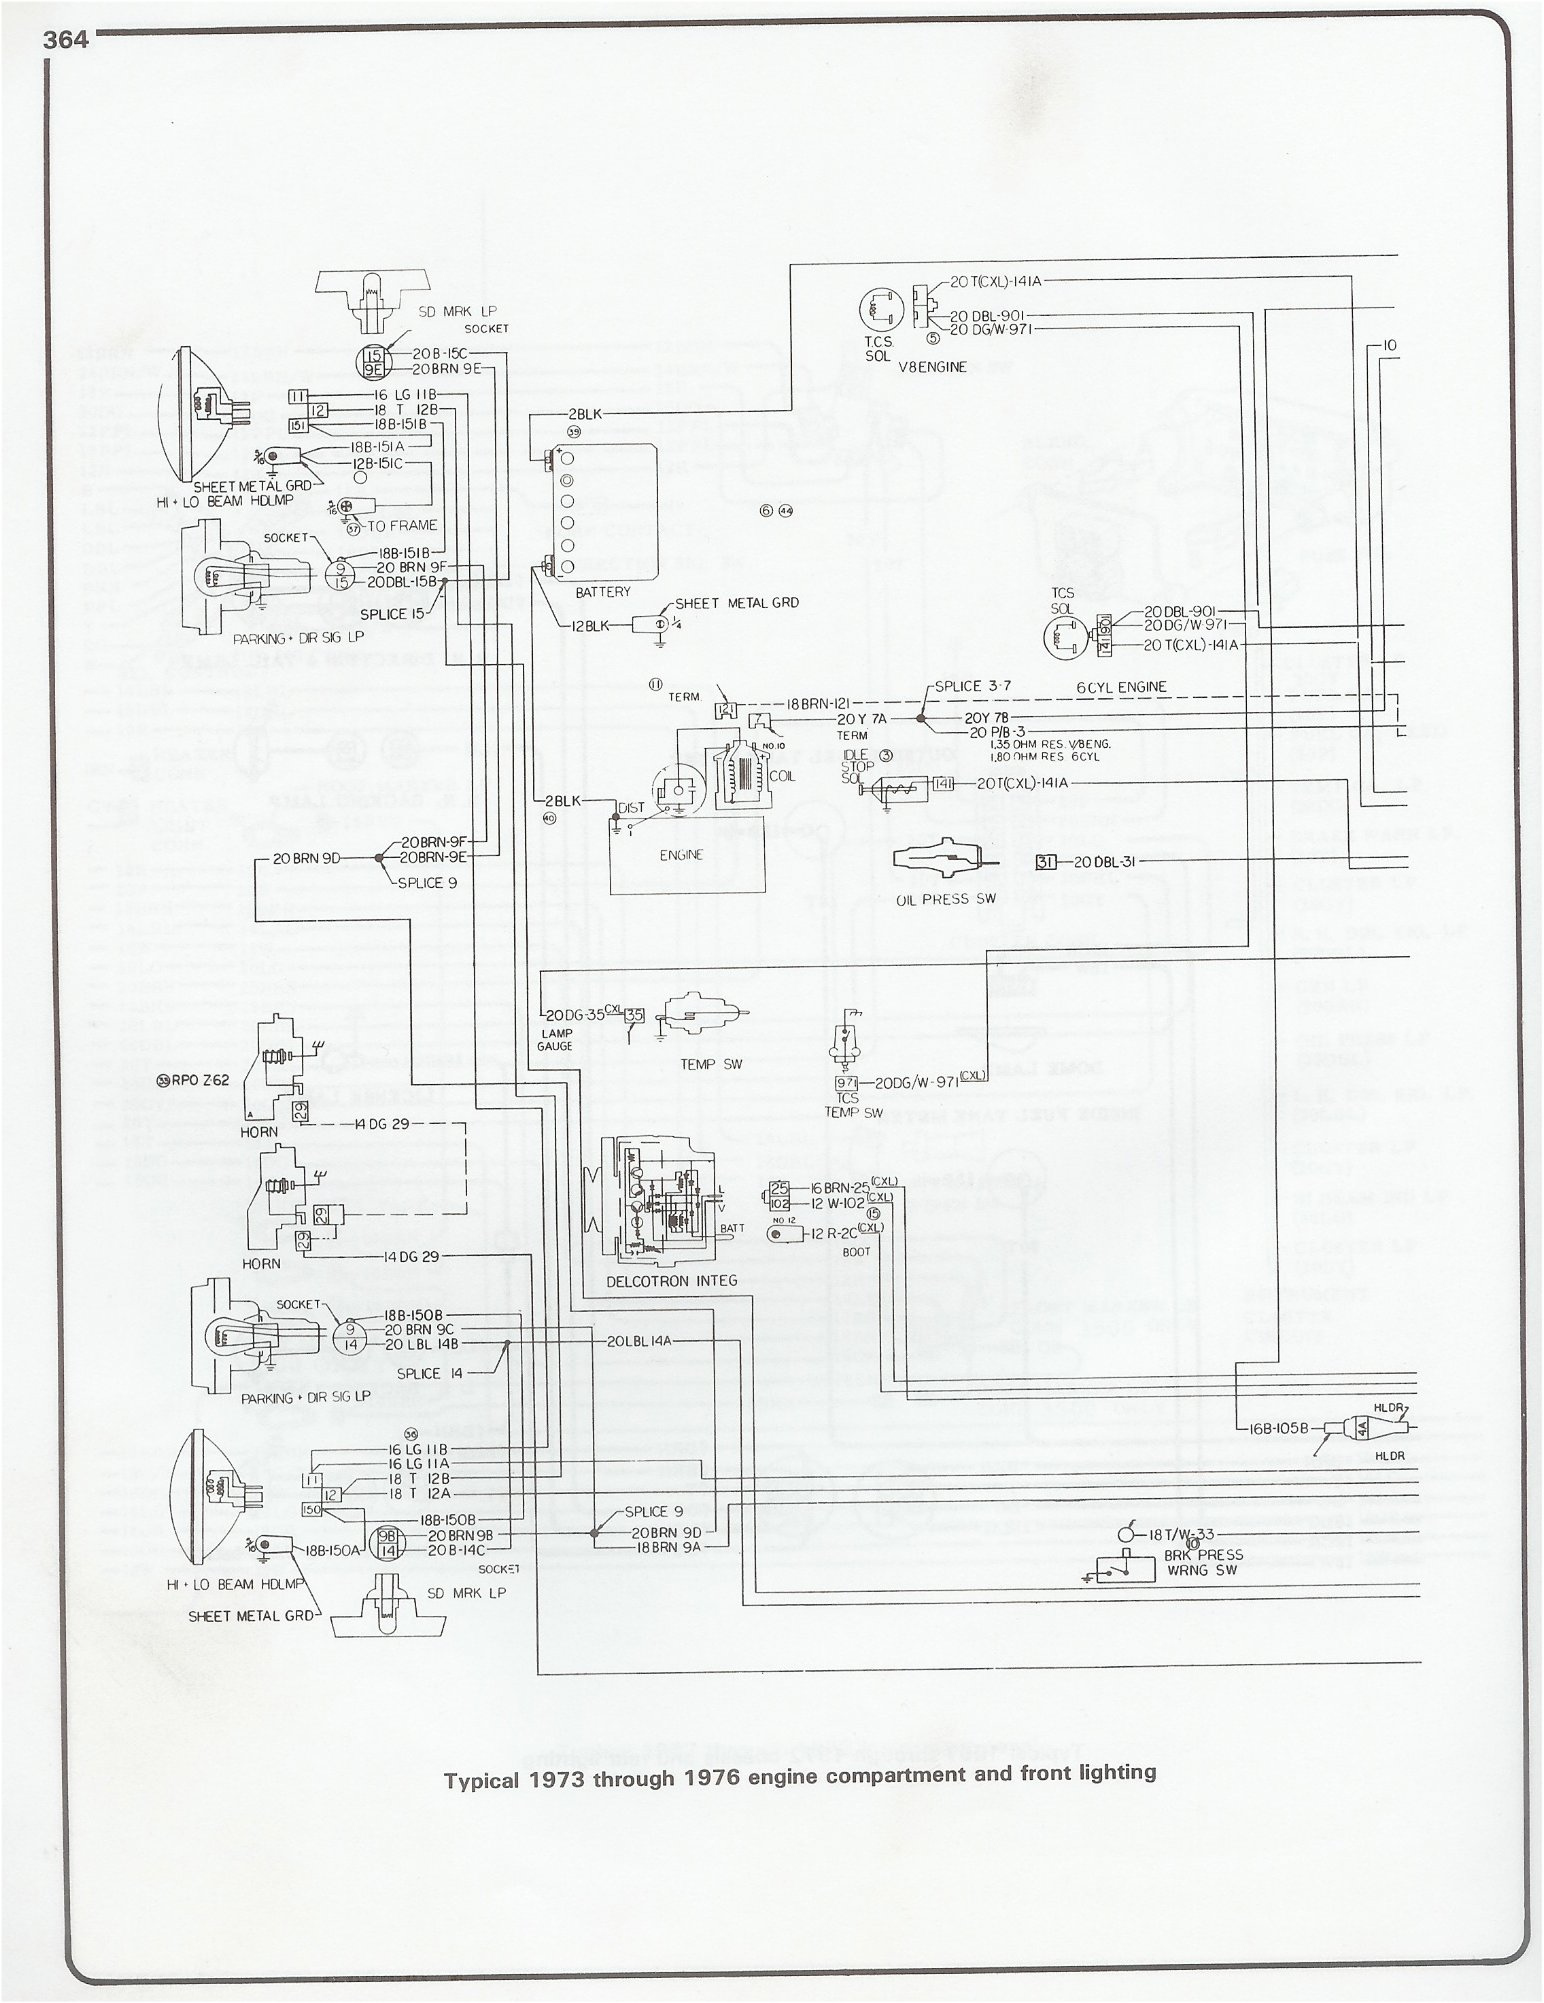 camaro wiring diagram as well 1966 c10 chevy truck wiring diagrams